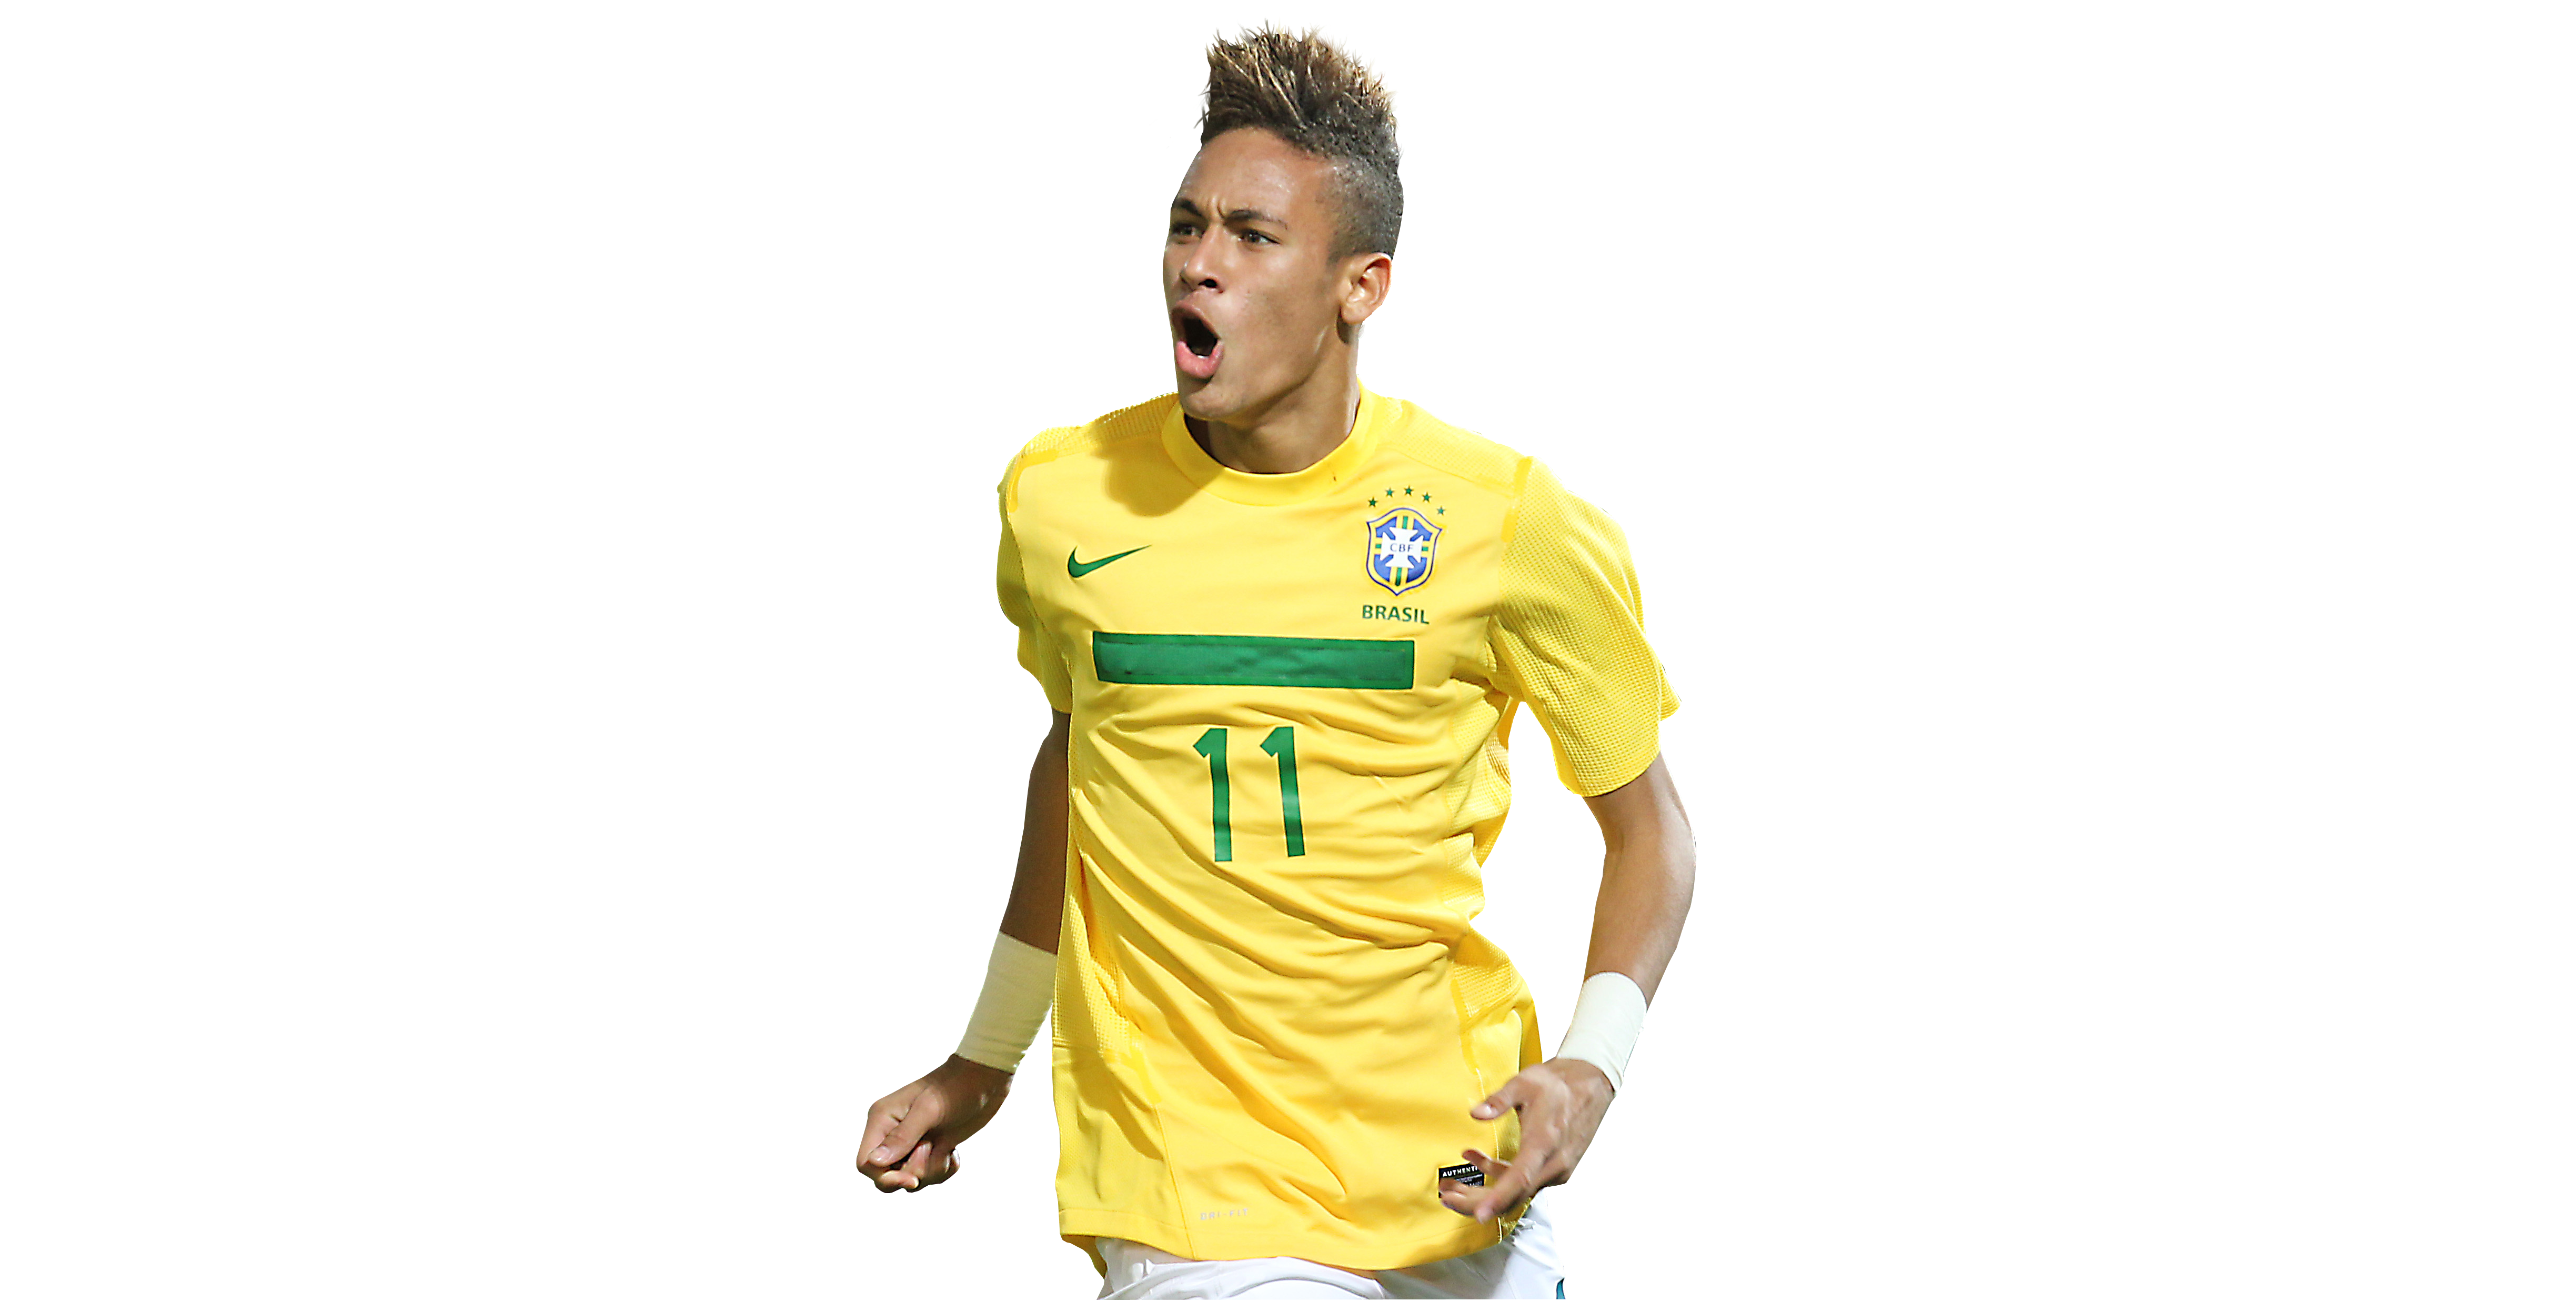 Neymar Junior Png 4896x2472, Neymar HD PNG Download